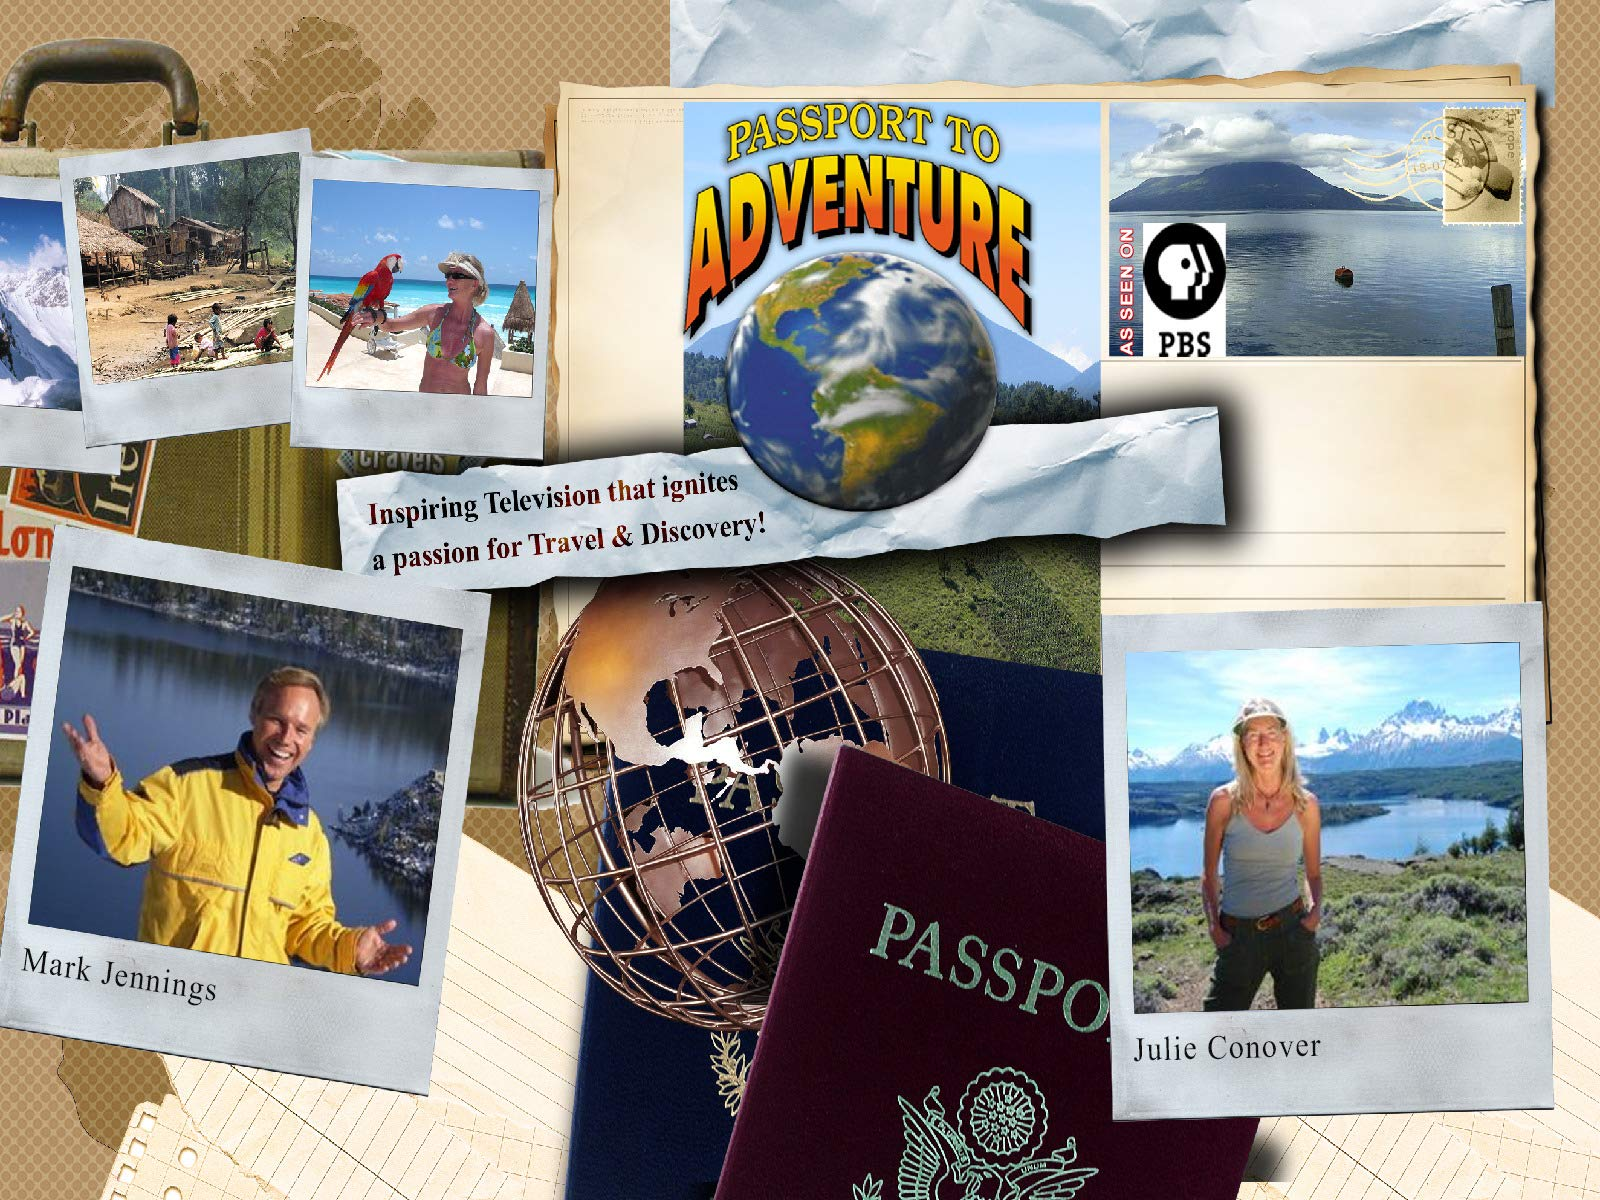 Passport to Adventure - Season 2